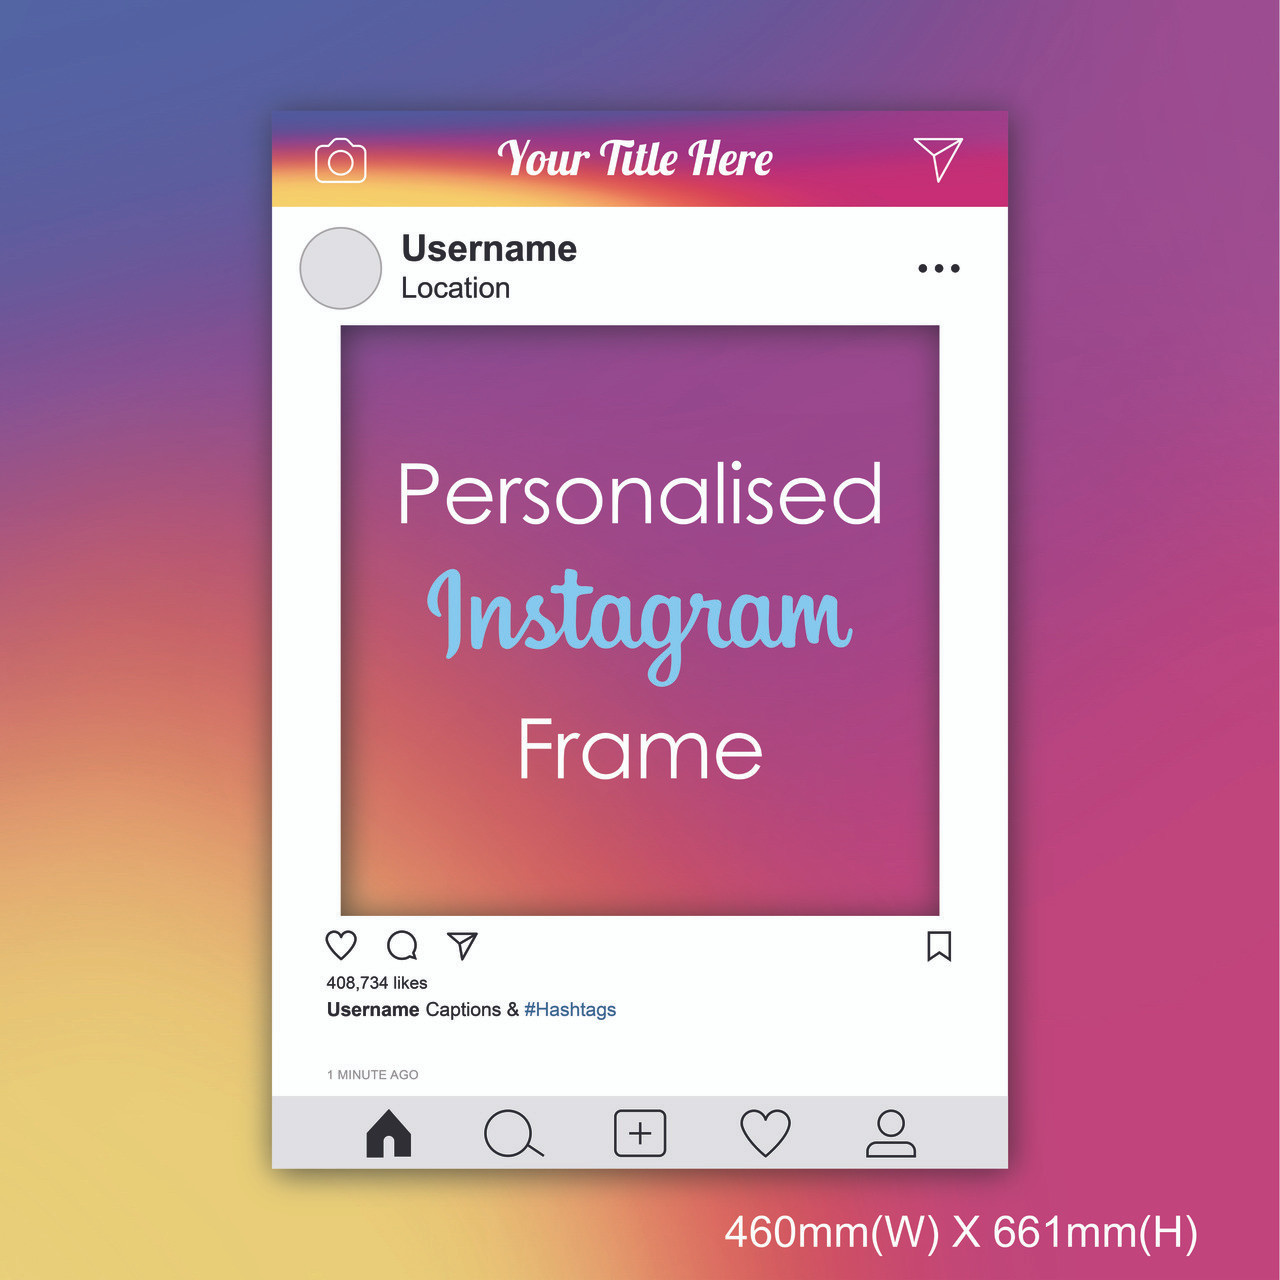 Personalized Instagram Frame - Small size [2019 edition]